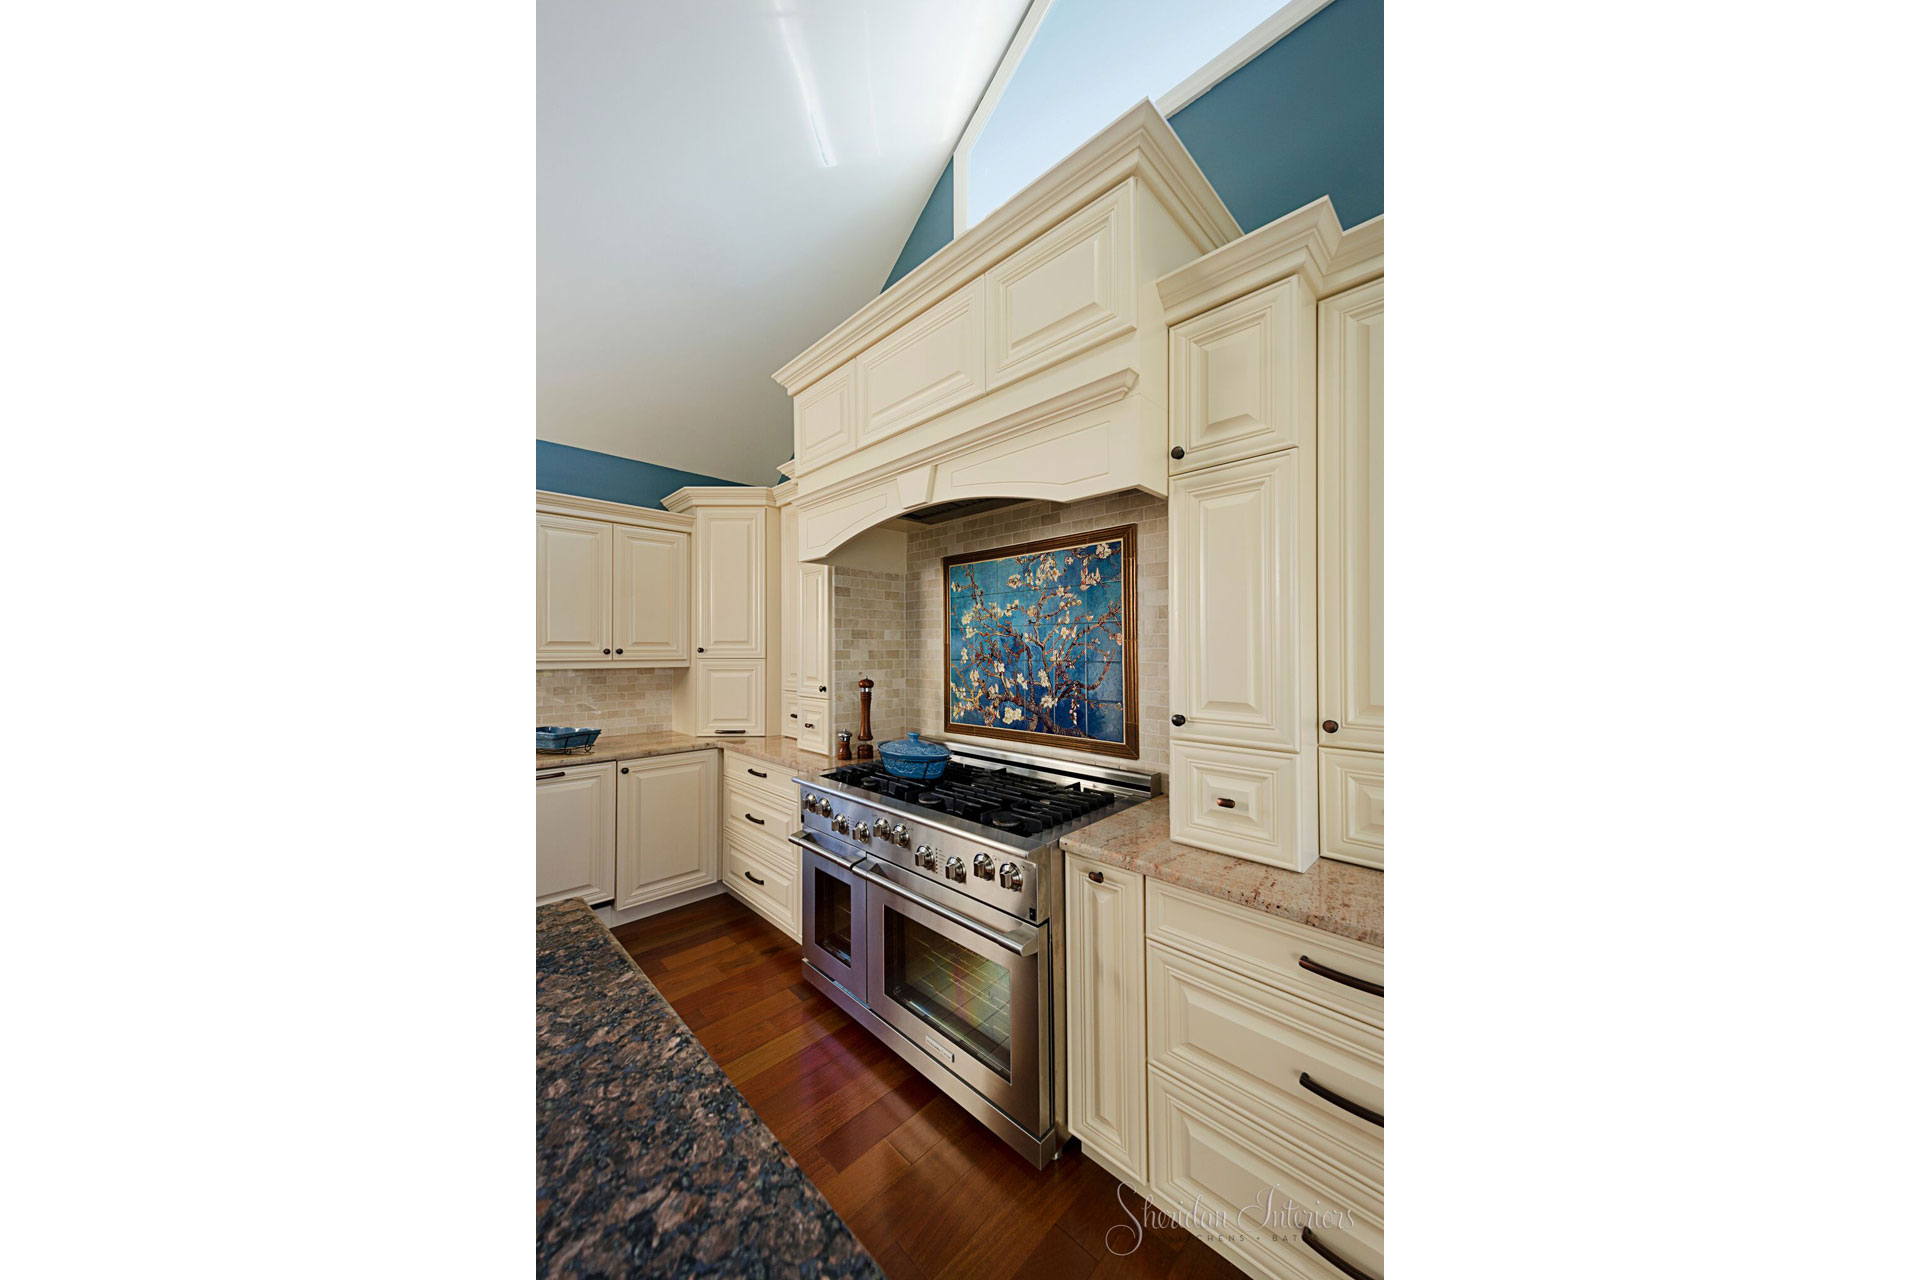 traditional kitchen, decorative painted backsplash, Traditional White Kitchen Cabinet Range Hood - Sheridan Interiors, sheridan interiors kitchens and baths, kitchen designer cornwall, kitchen designer ottawa